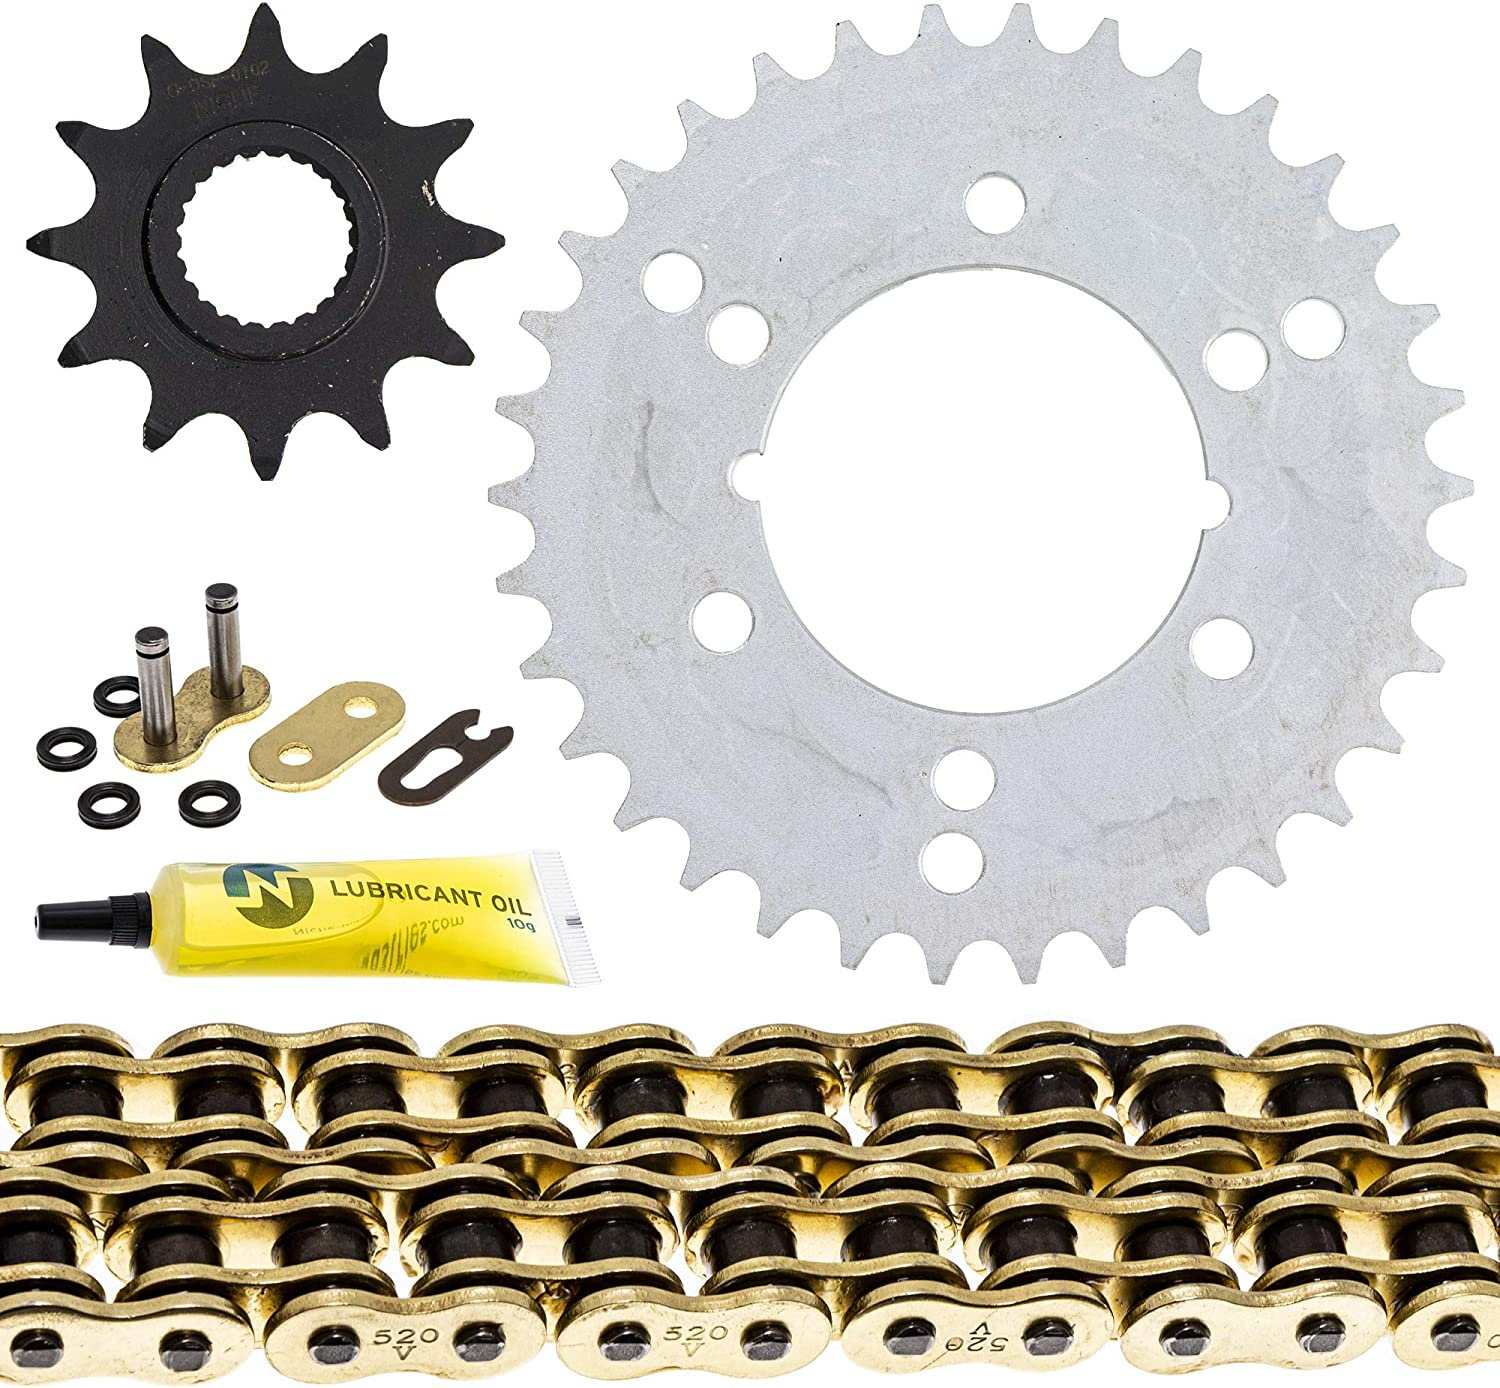 NICHE Drive Sprocket Chain Combo for Polaris Xpress 300 Trail Boss 350L Front 12 Rear 34 Tooth 520V O-Ring 86 Links